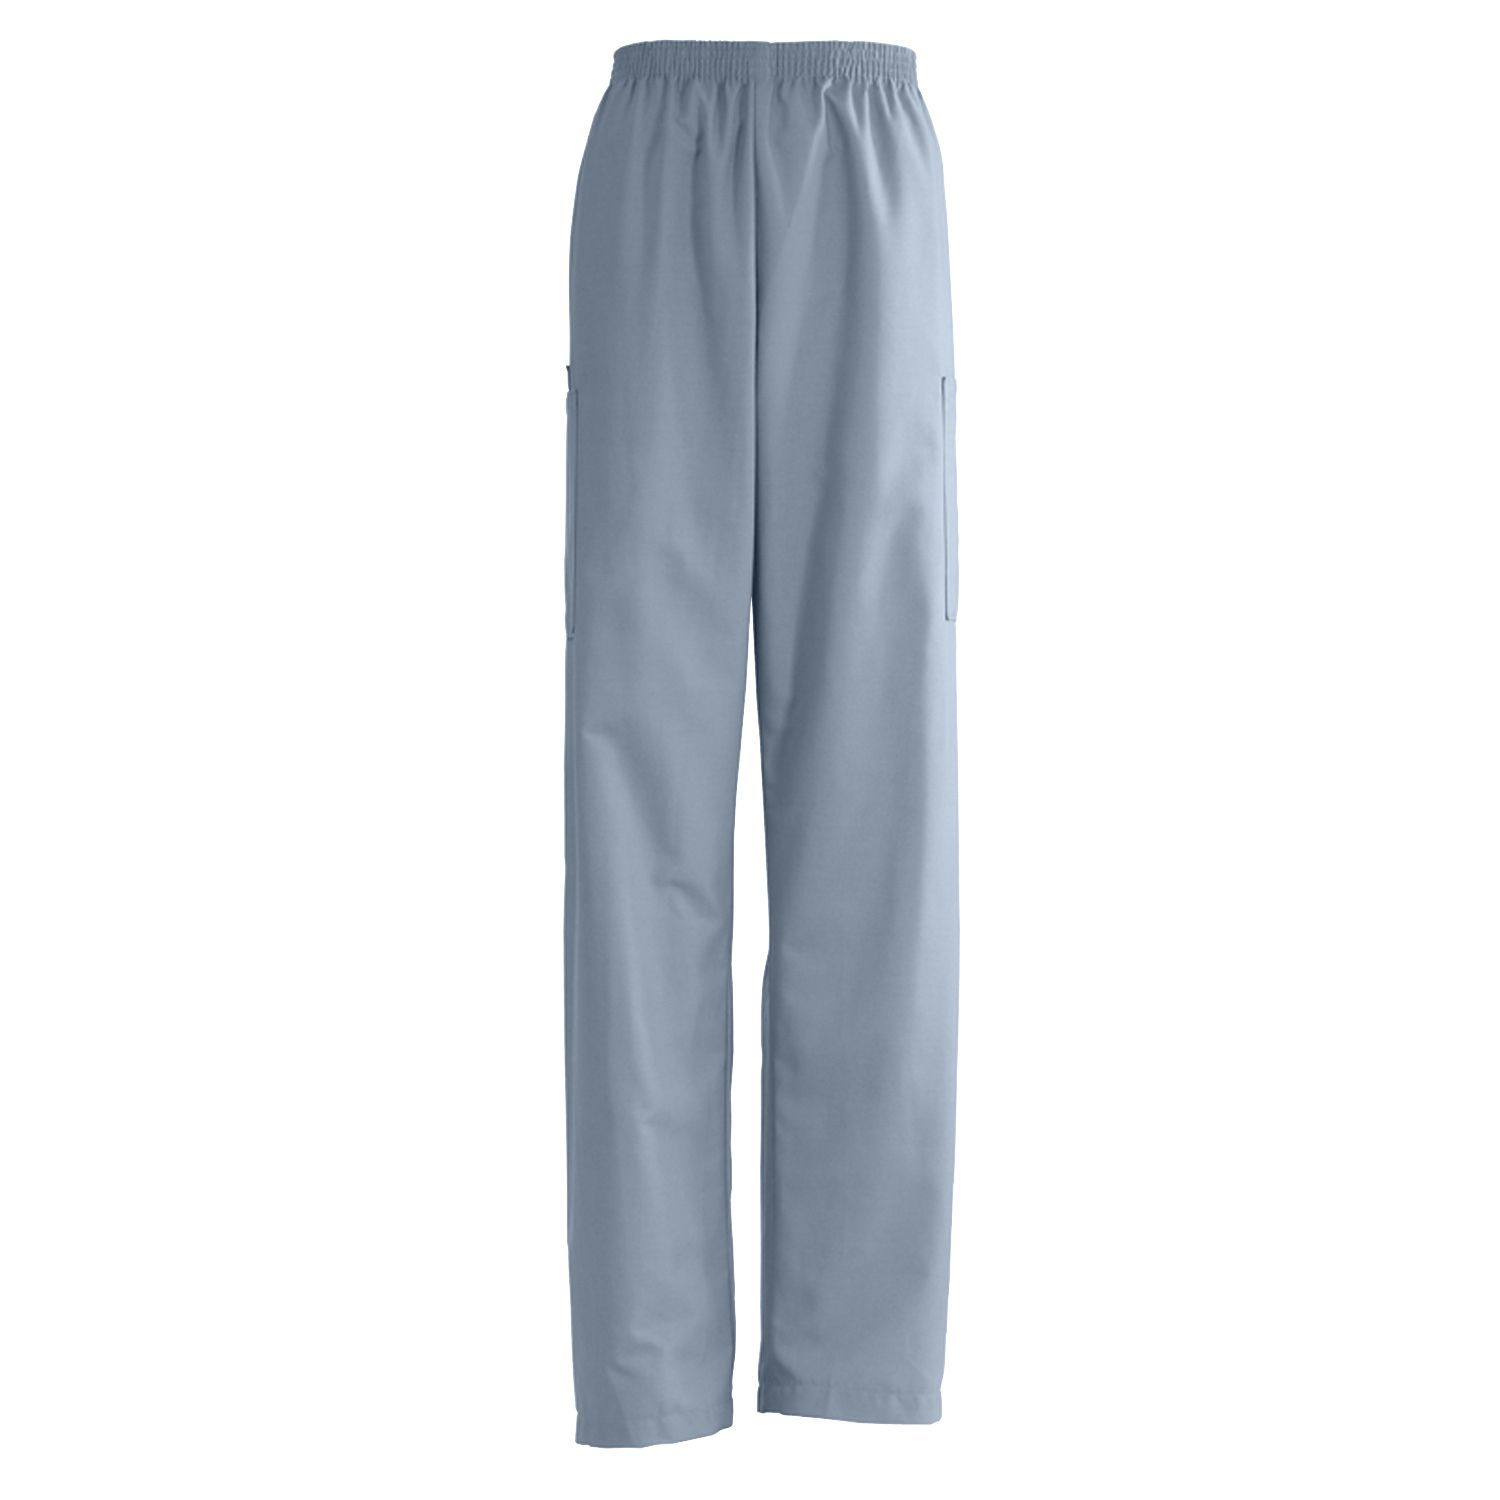 AngelStat Unisex Elastic Waist Cargo Scrub Pants - Misty, 2Xl, Long, XXL, Each - Model 674NTZXXLL